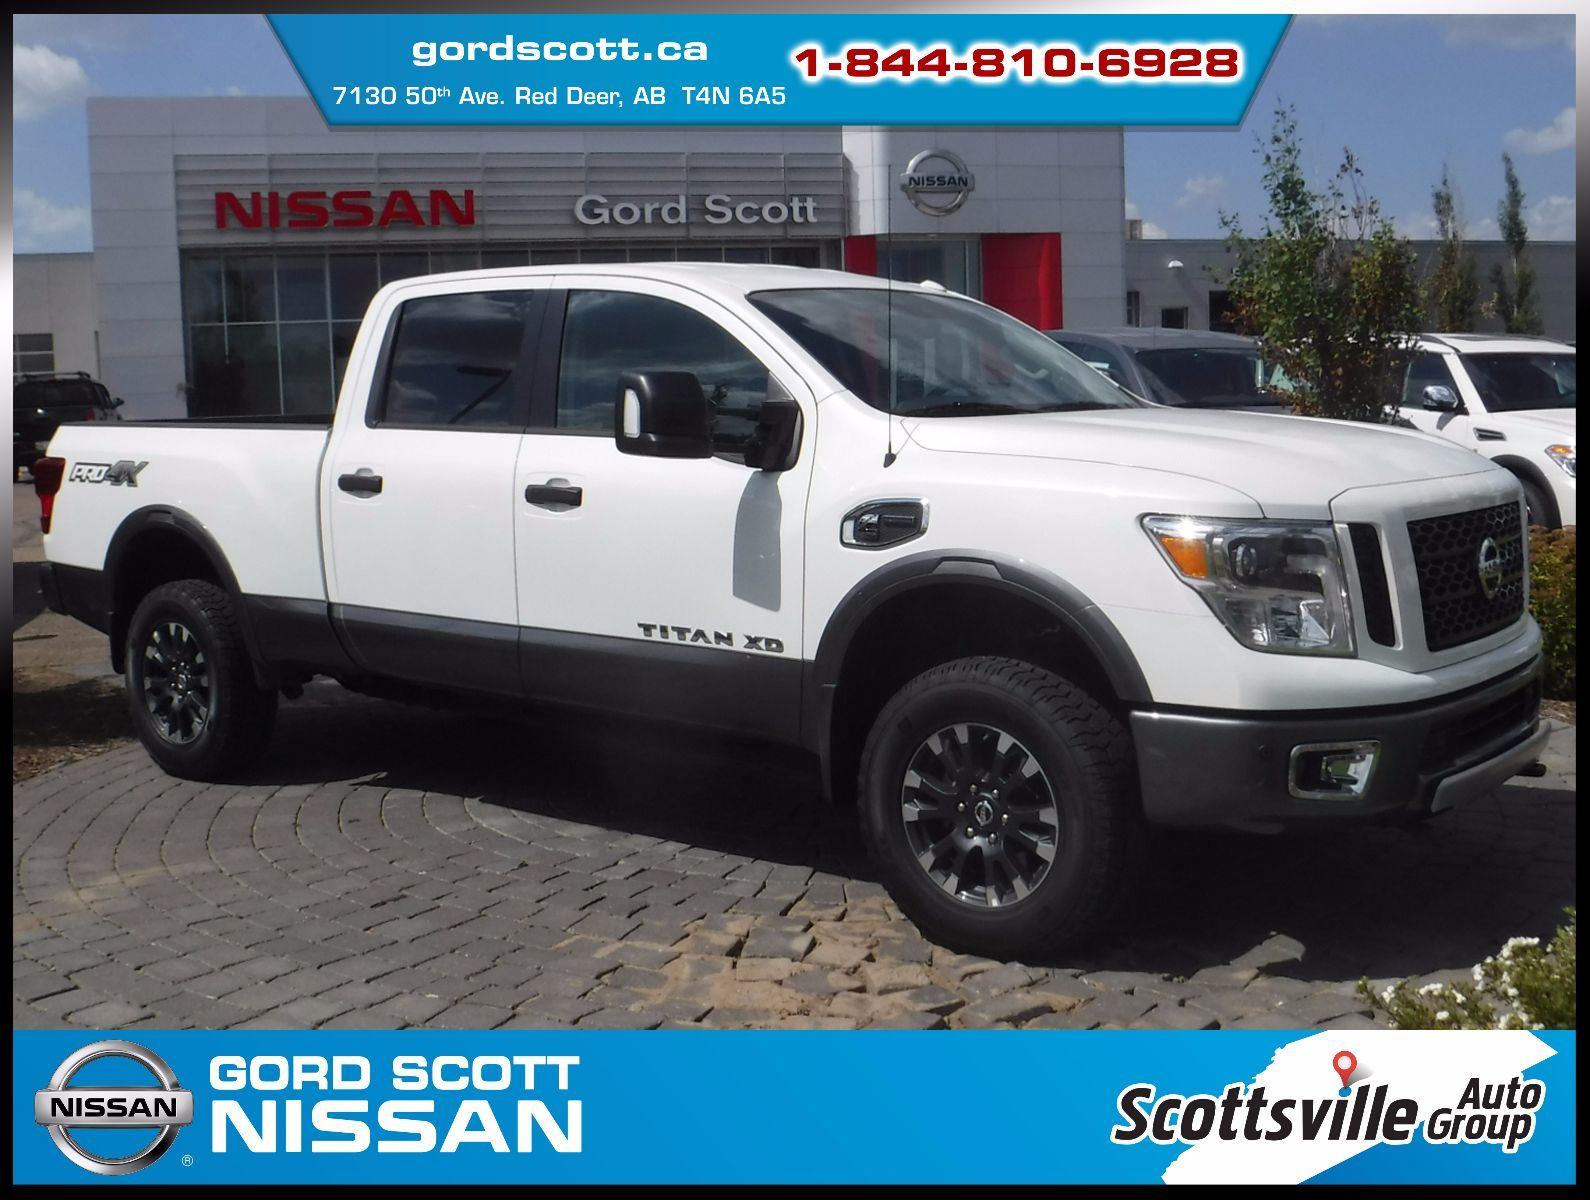 new 2017 nissan titan xd diesel pro 4x luxury package w two tone paint for sale in red deer. Black Bedroom Furniture Sets. Home Design Ideas